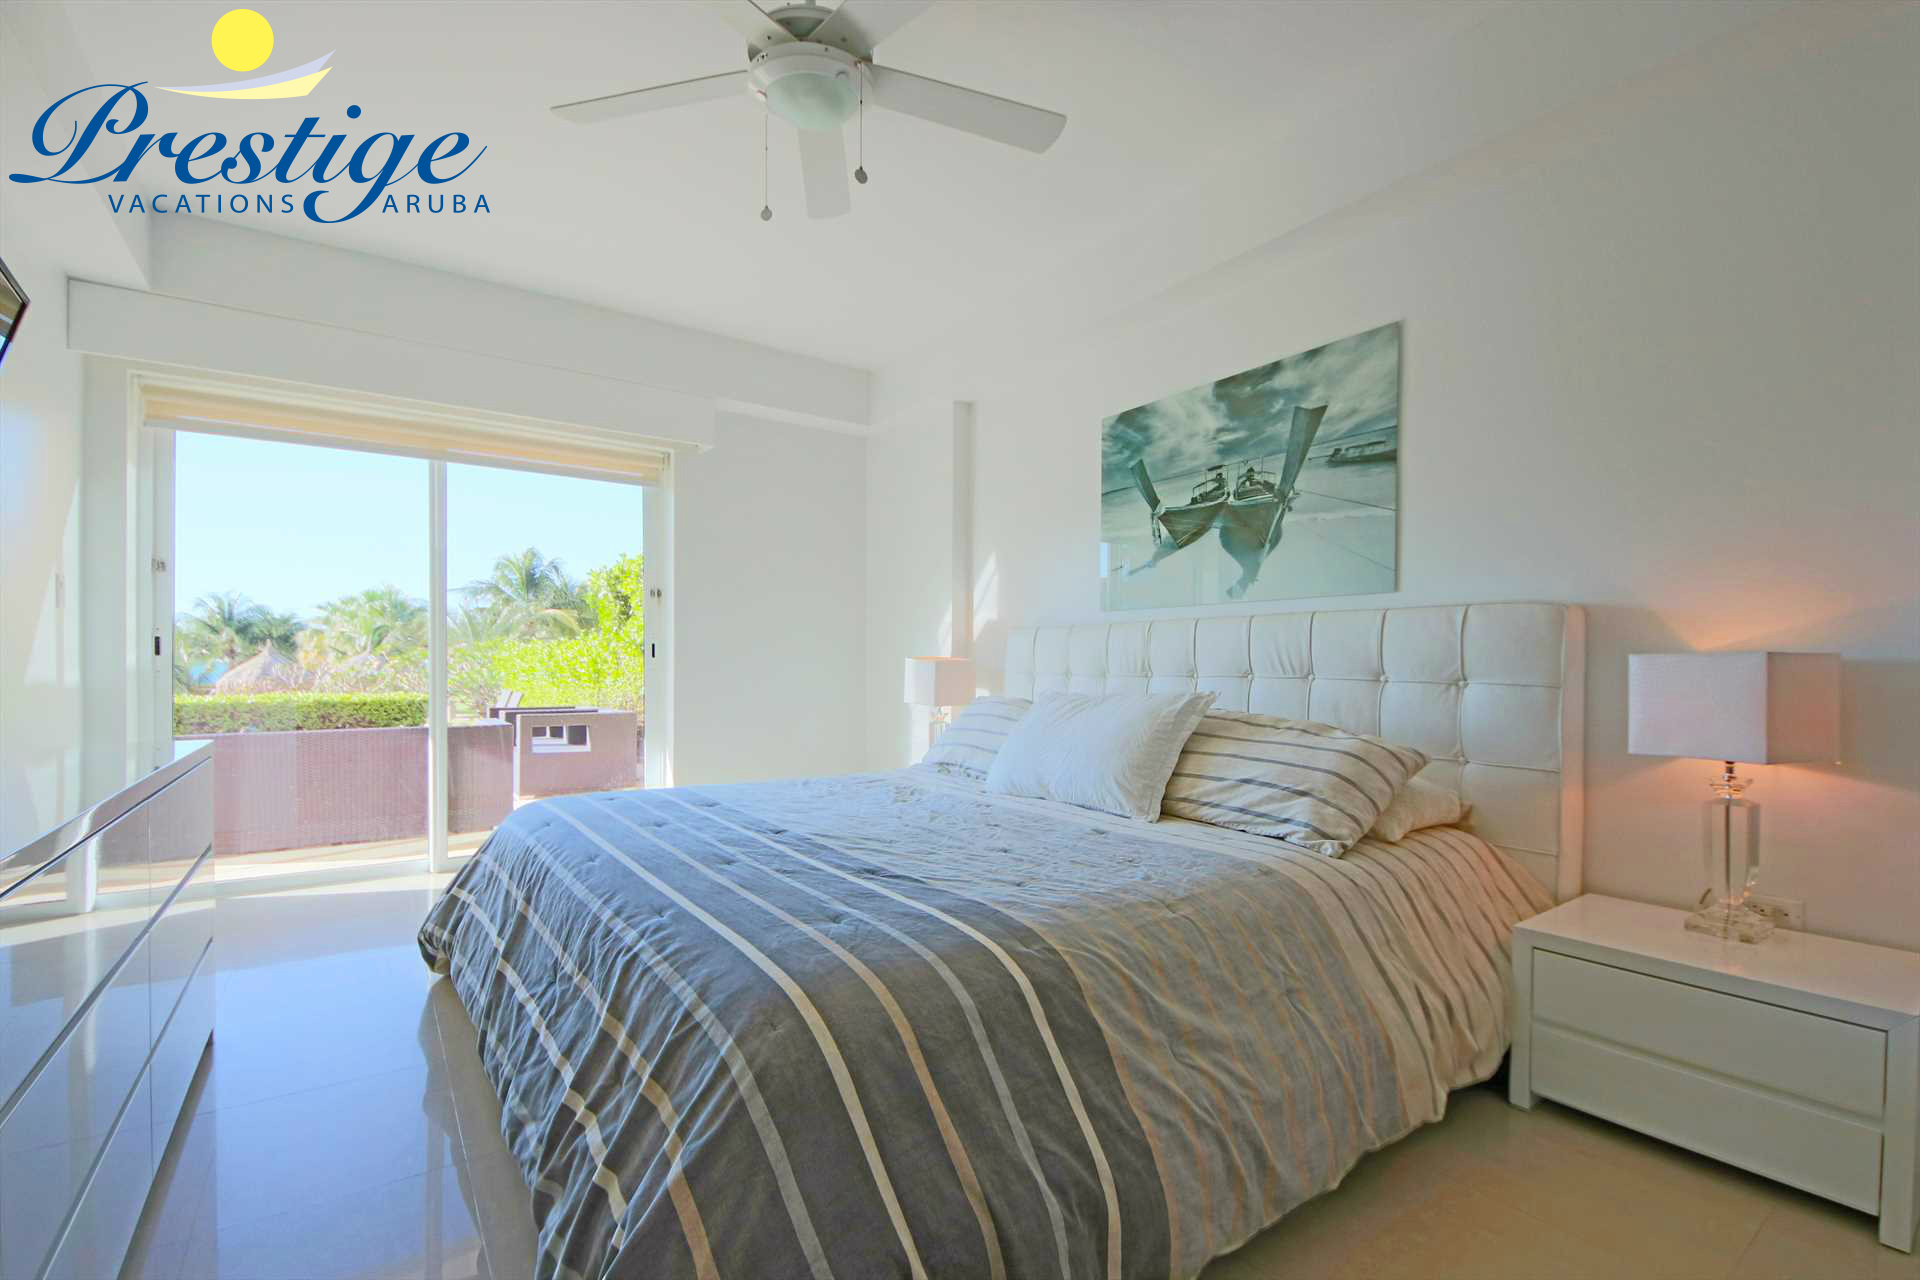 The master bedroom with king-size bed and access to the terrace too